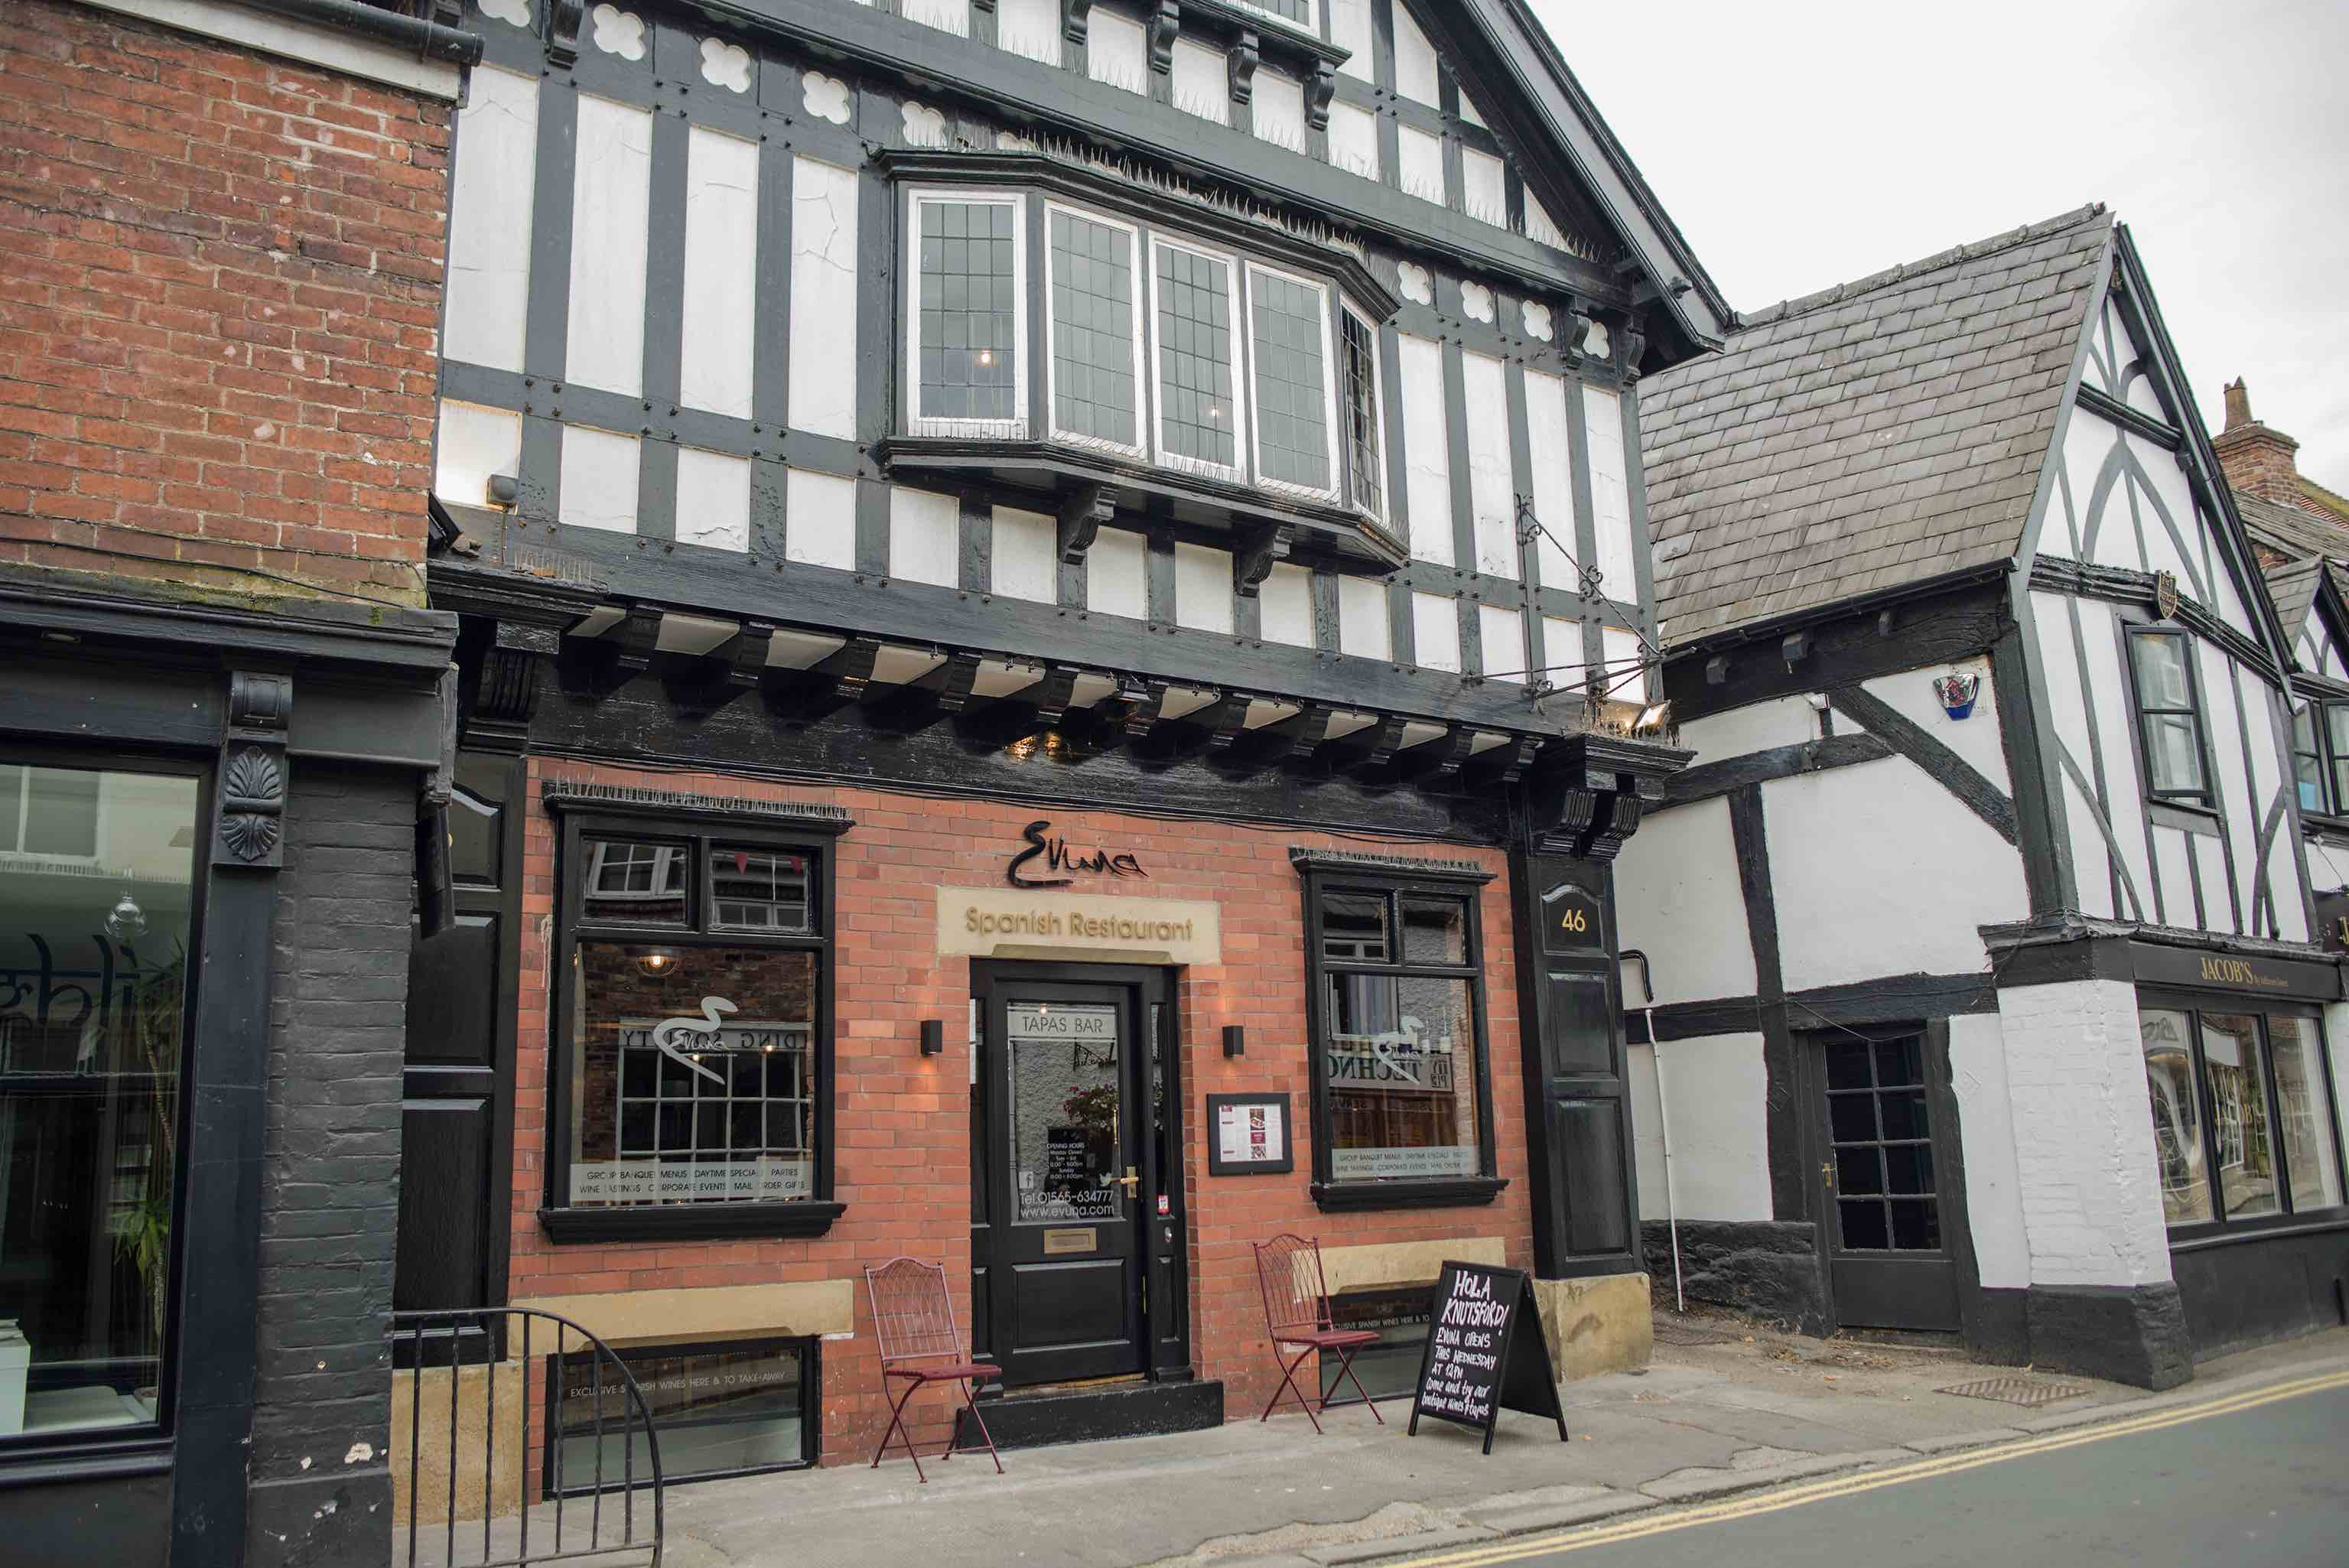 Spain Comes To Cheshire First Look At The New Knutsford Evuna News Taste Of Manchester